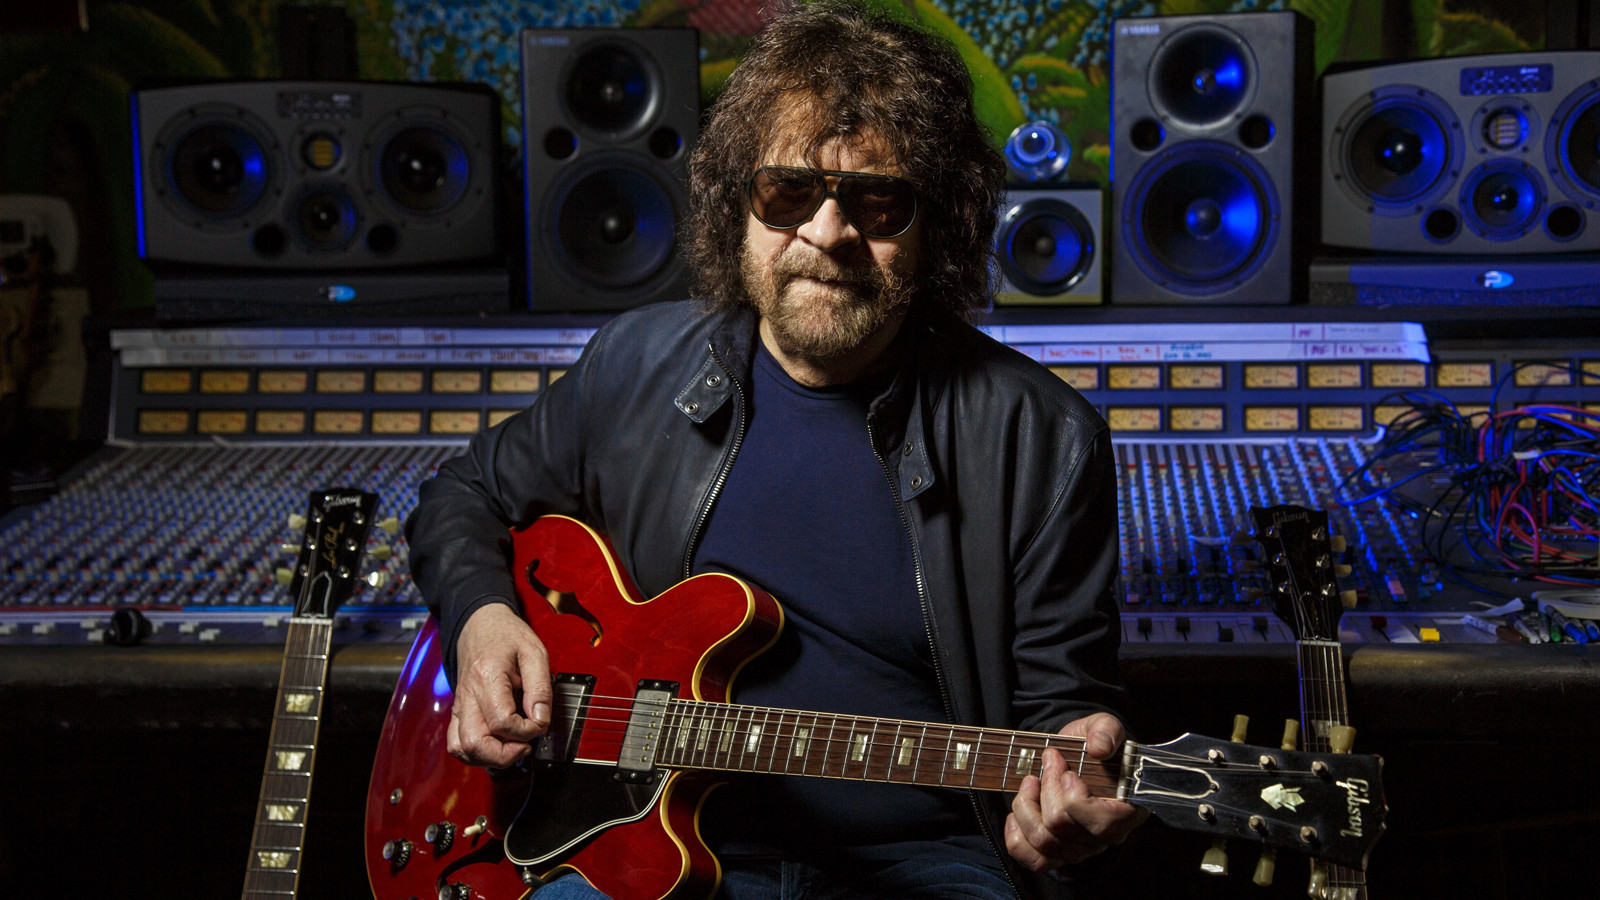 Jeff Lynne Launches Into New Orbit With Elo S Alone In